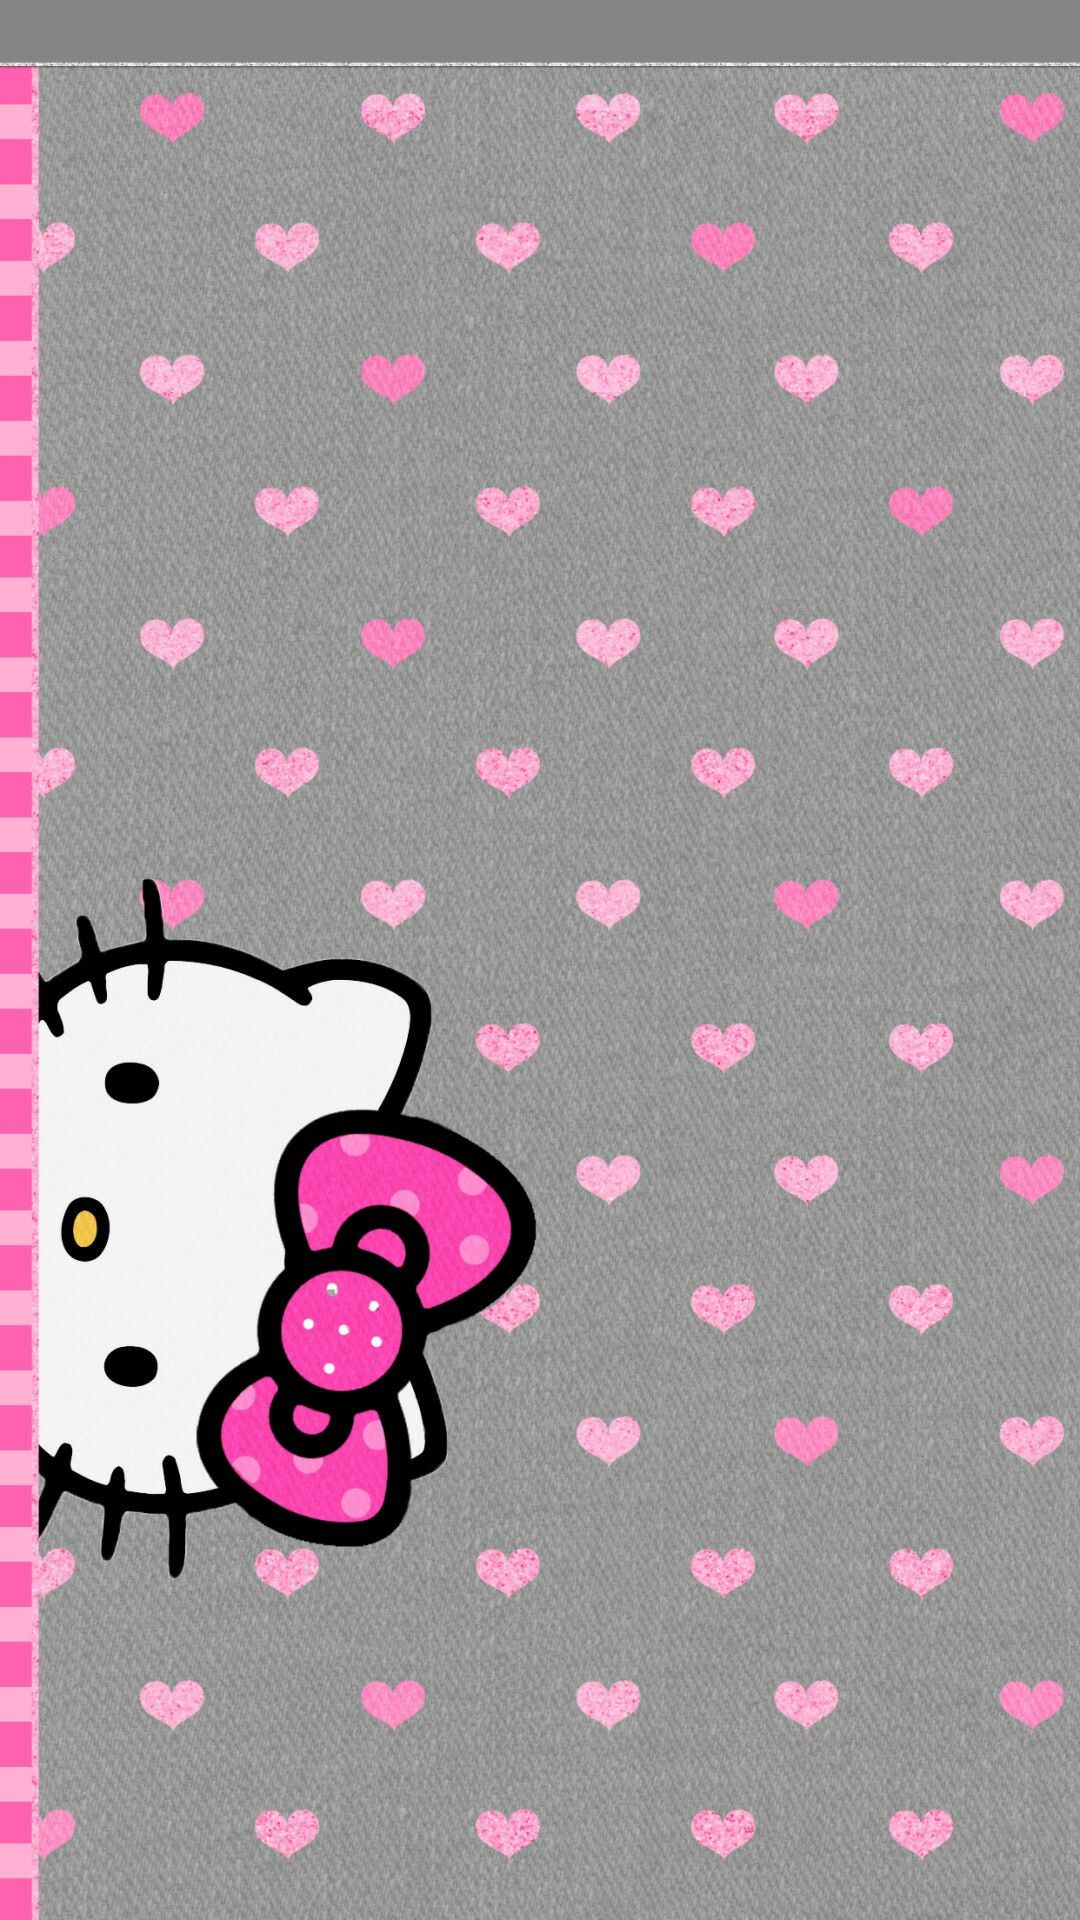 Black Hello Kitty Cute iPhone Wallpapers  iPhone